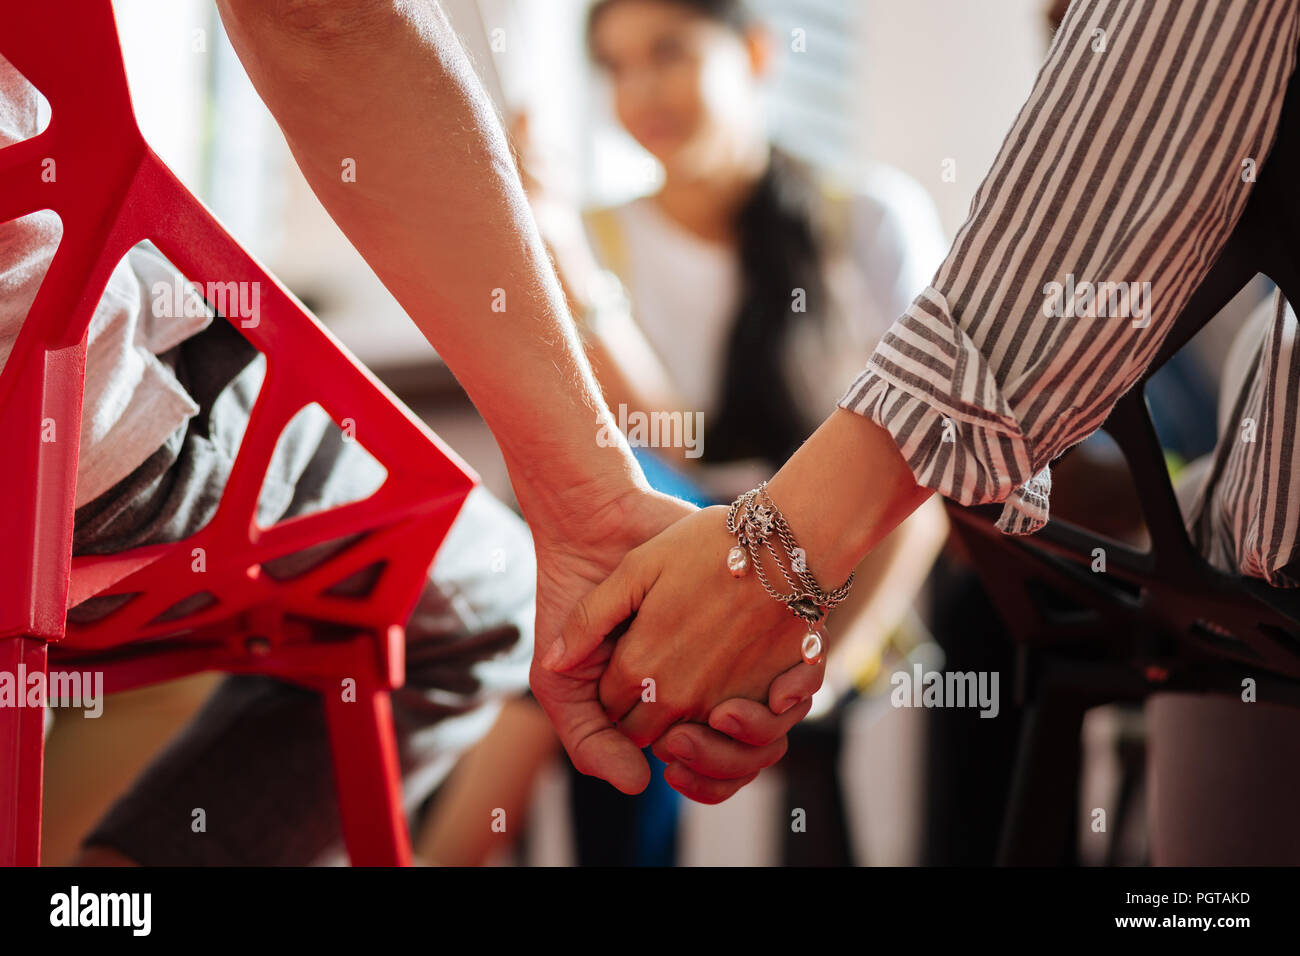 Two people sitting to together and holding hands during the psychological session - Stock Image